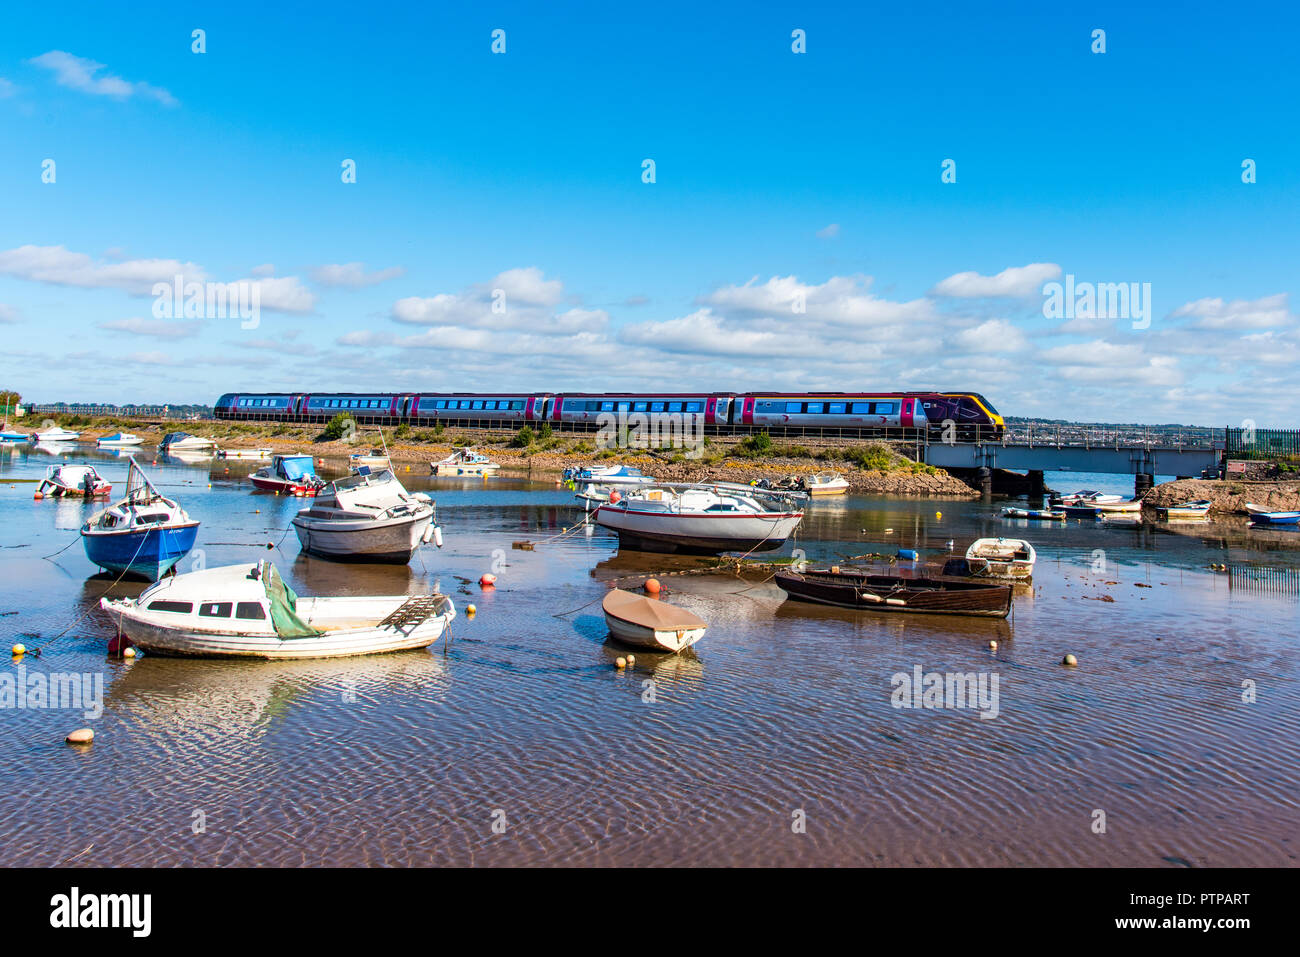 COCKWOOD, STARCROSS, DEVON, UK - 03OCT2018:  CrossCountry class 220 Voyager trainset passes the harbour at Cockwood on the Exe Estuary. - Stock Image